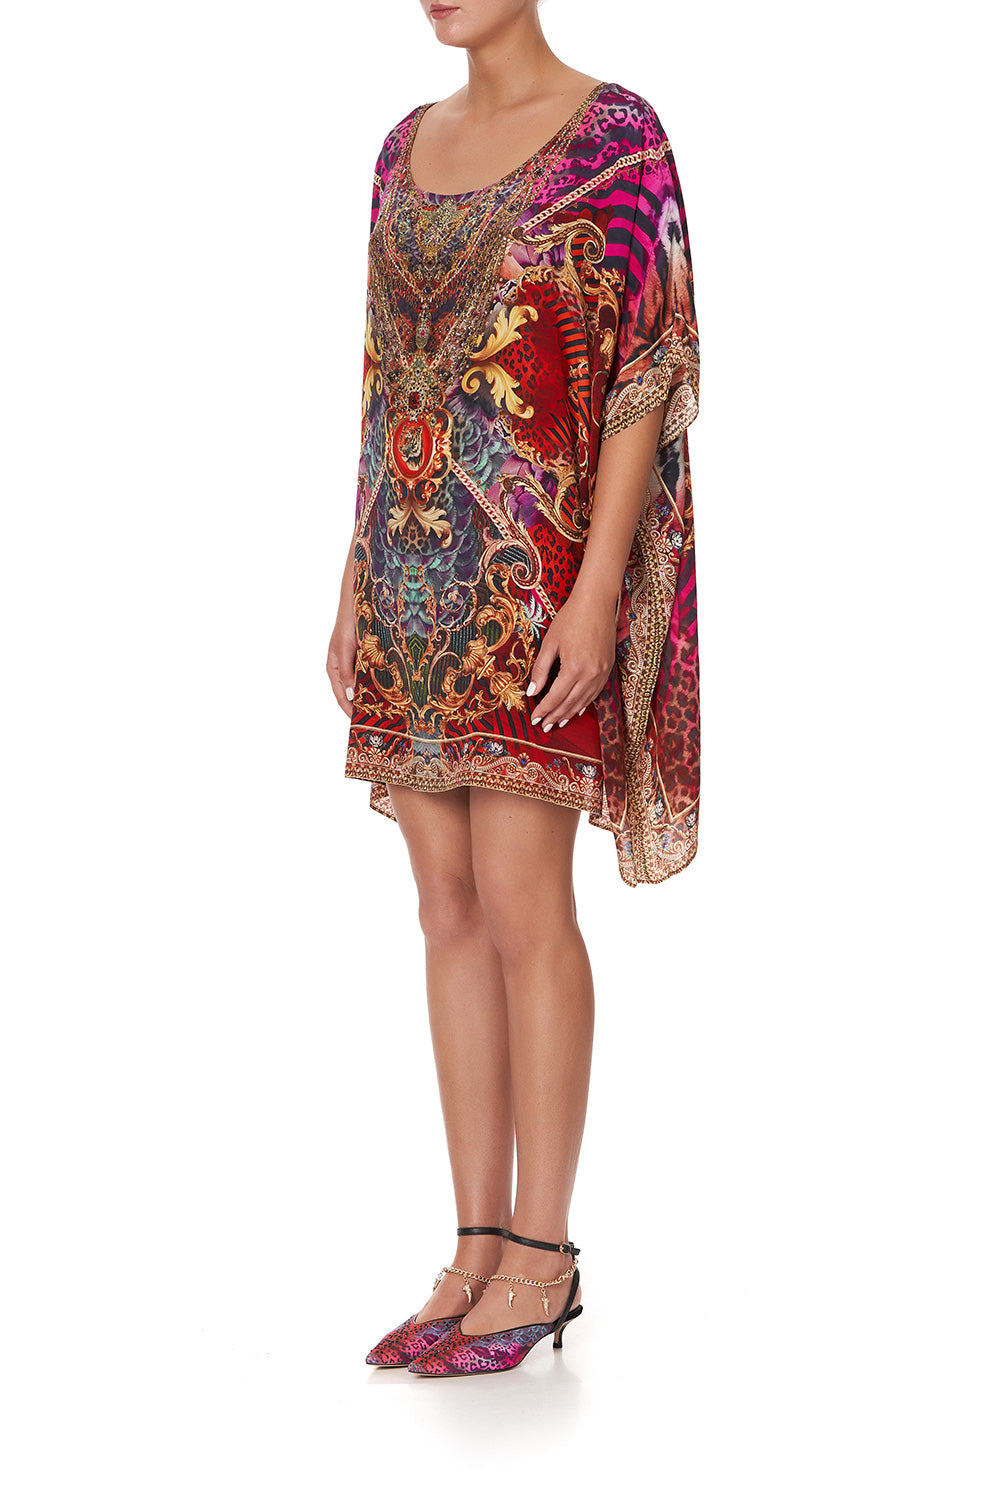 Slave To The Rhythm Short Round Neck Kaftan